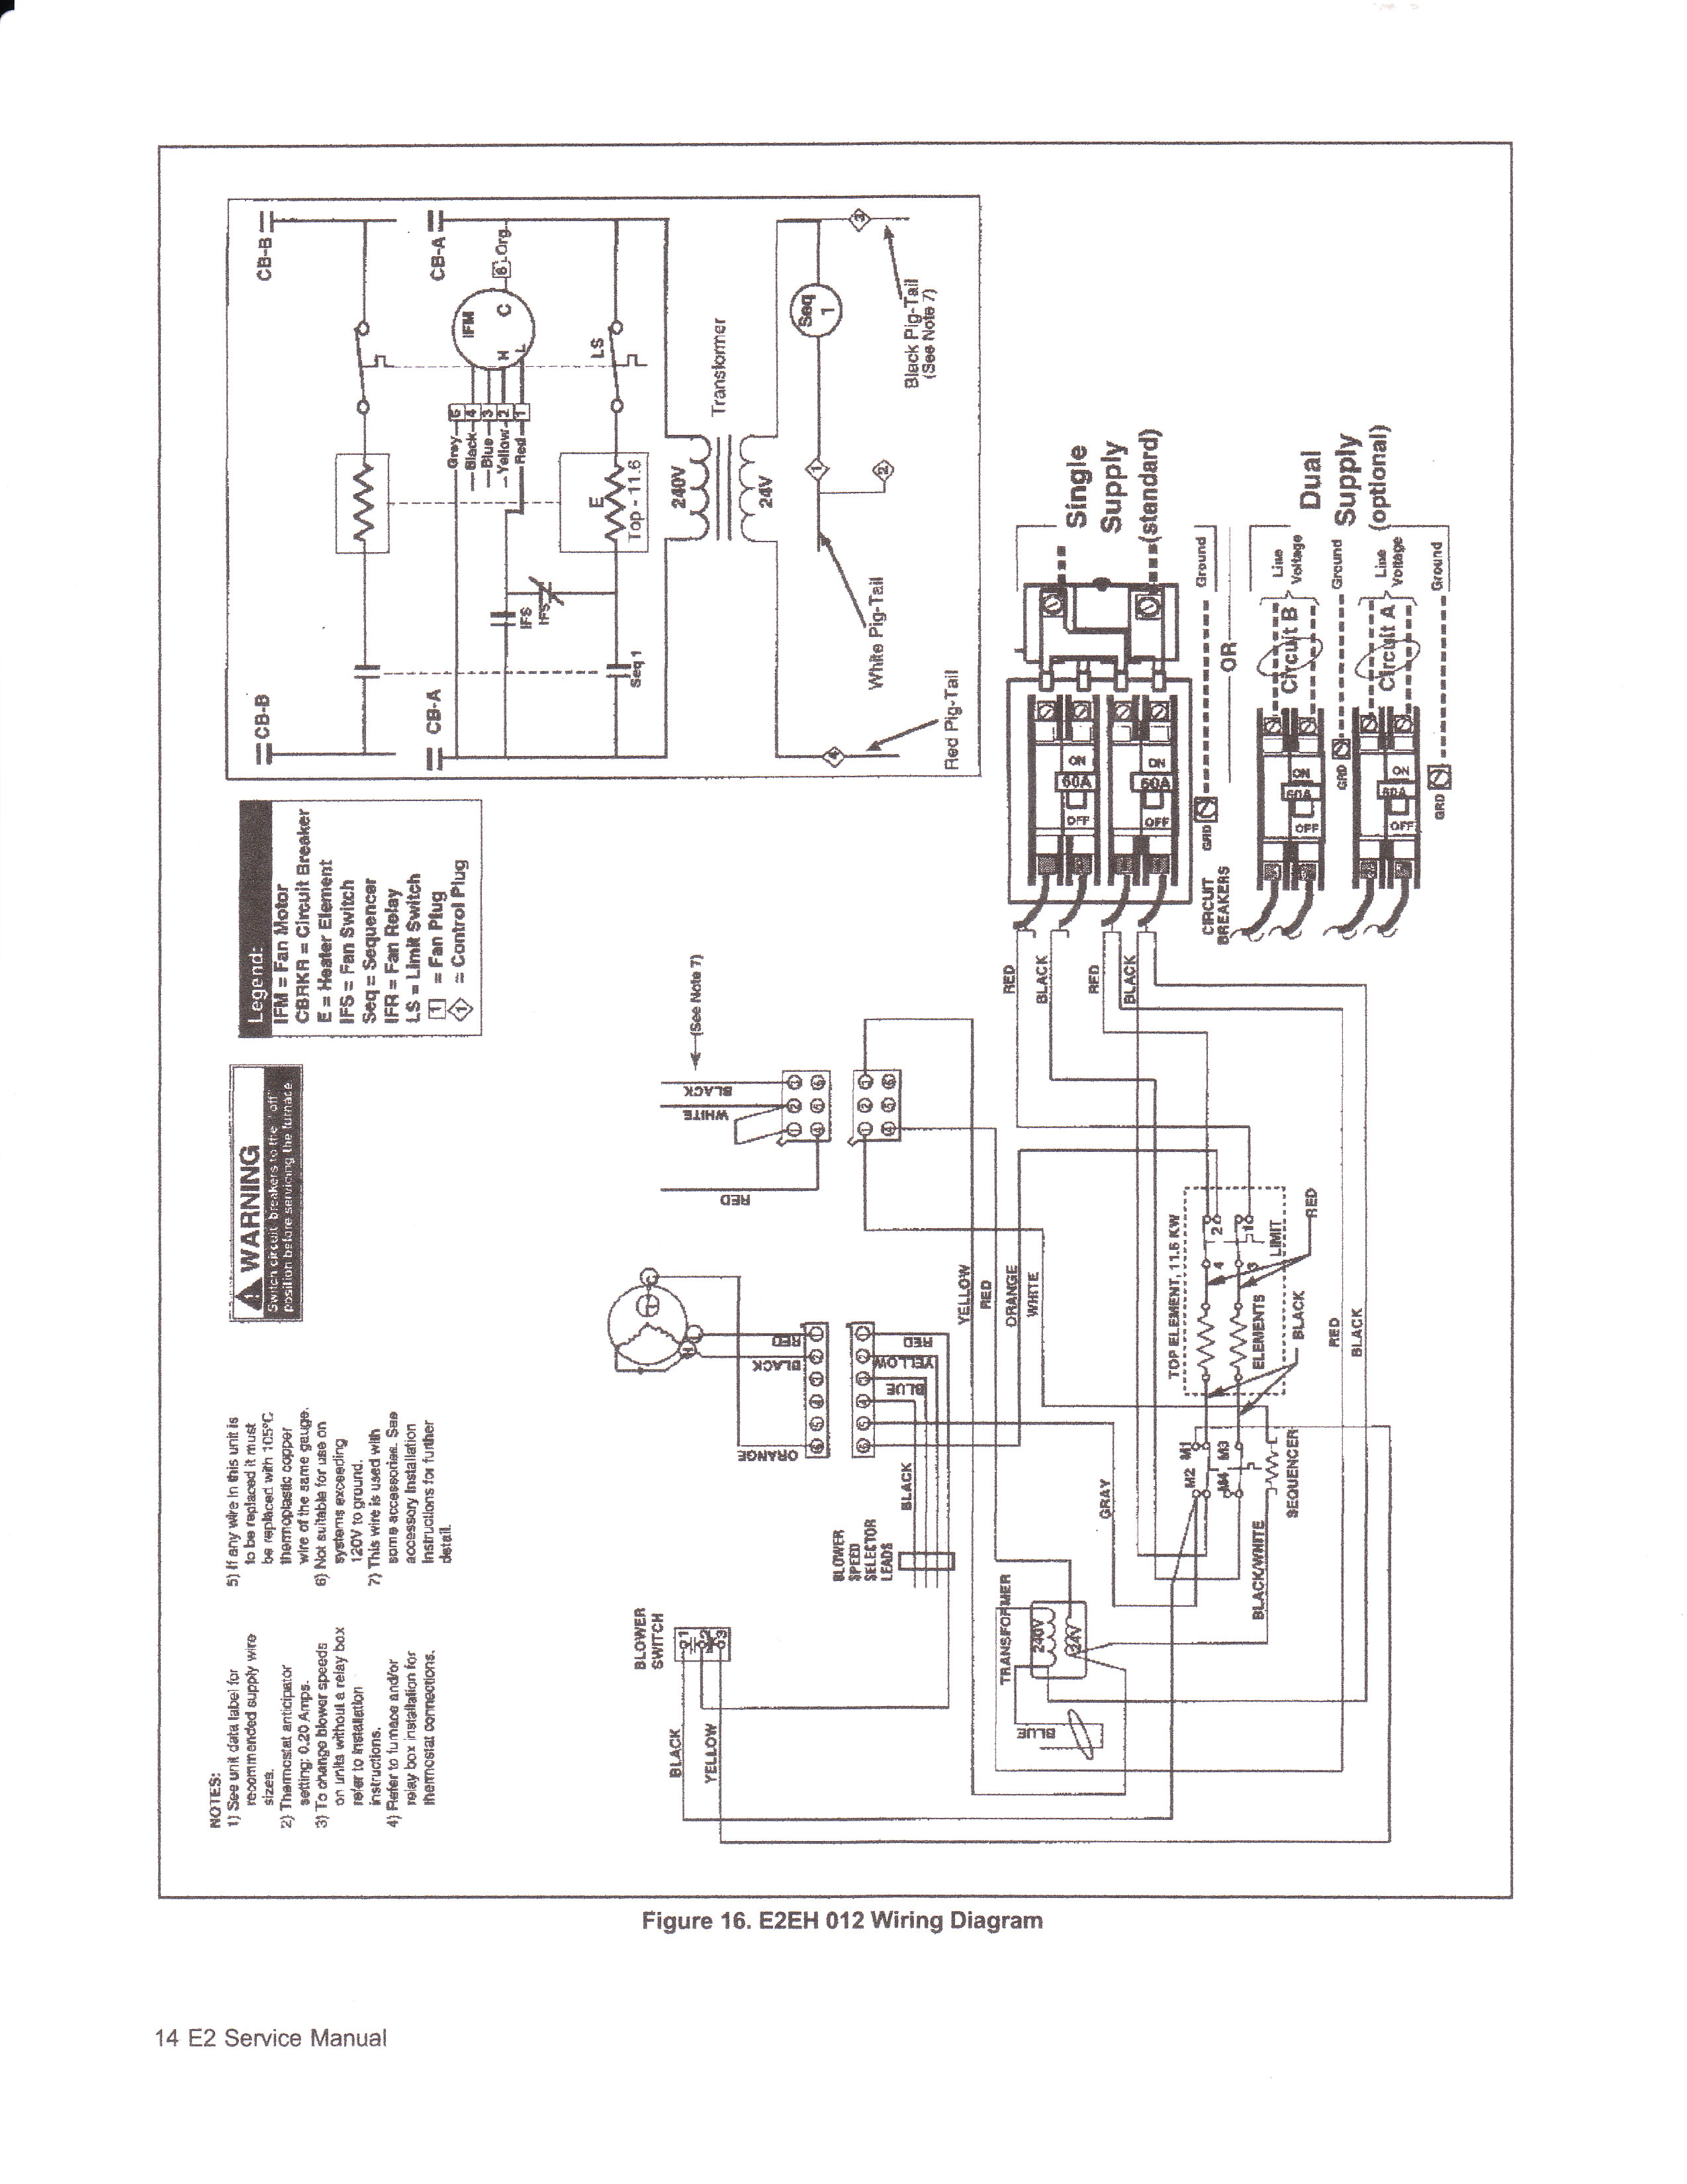 Wiring Diagram For Miller Furnace